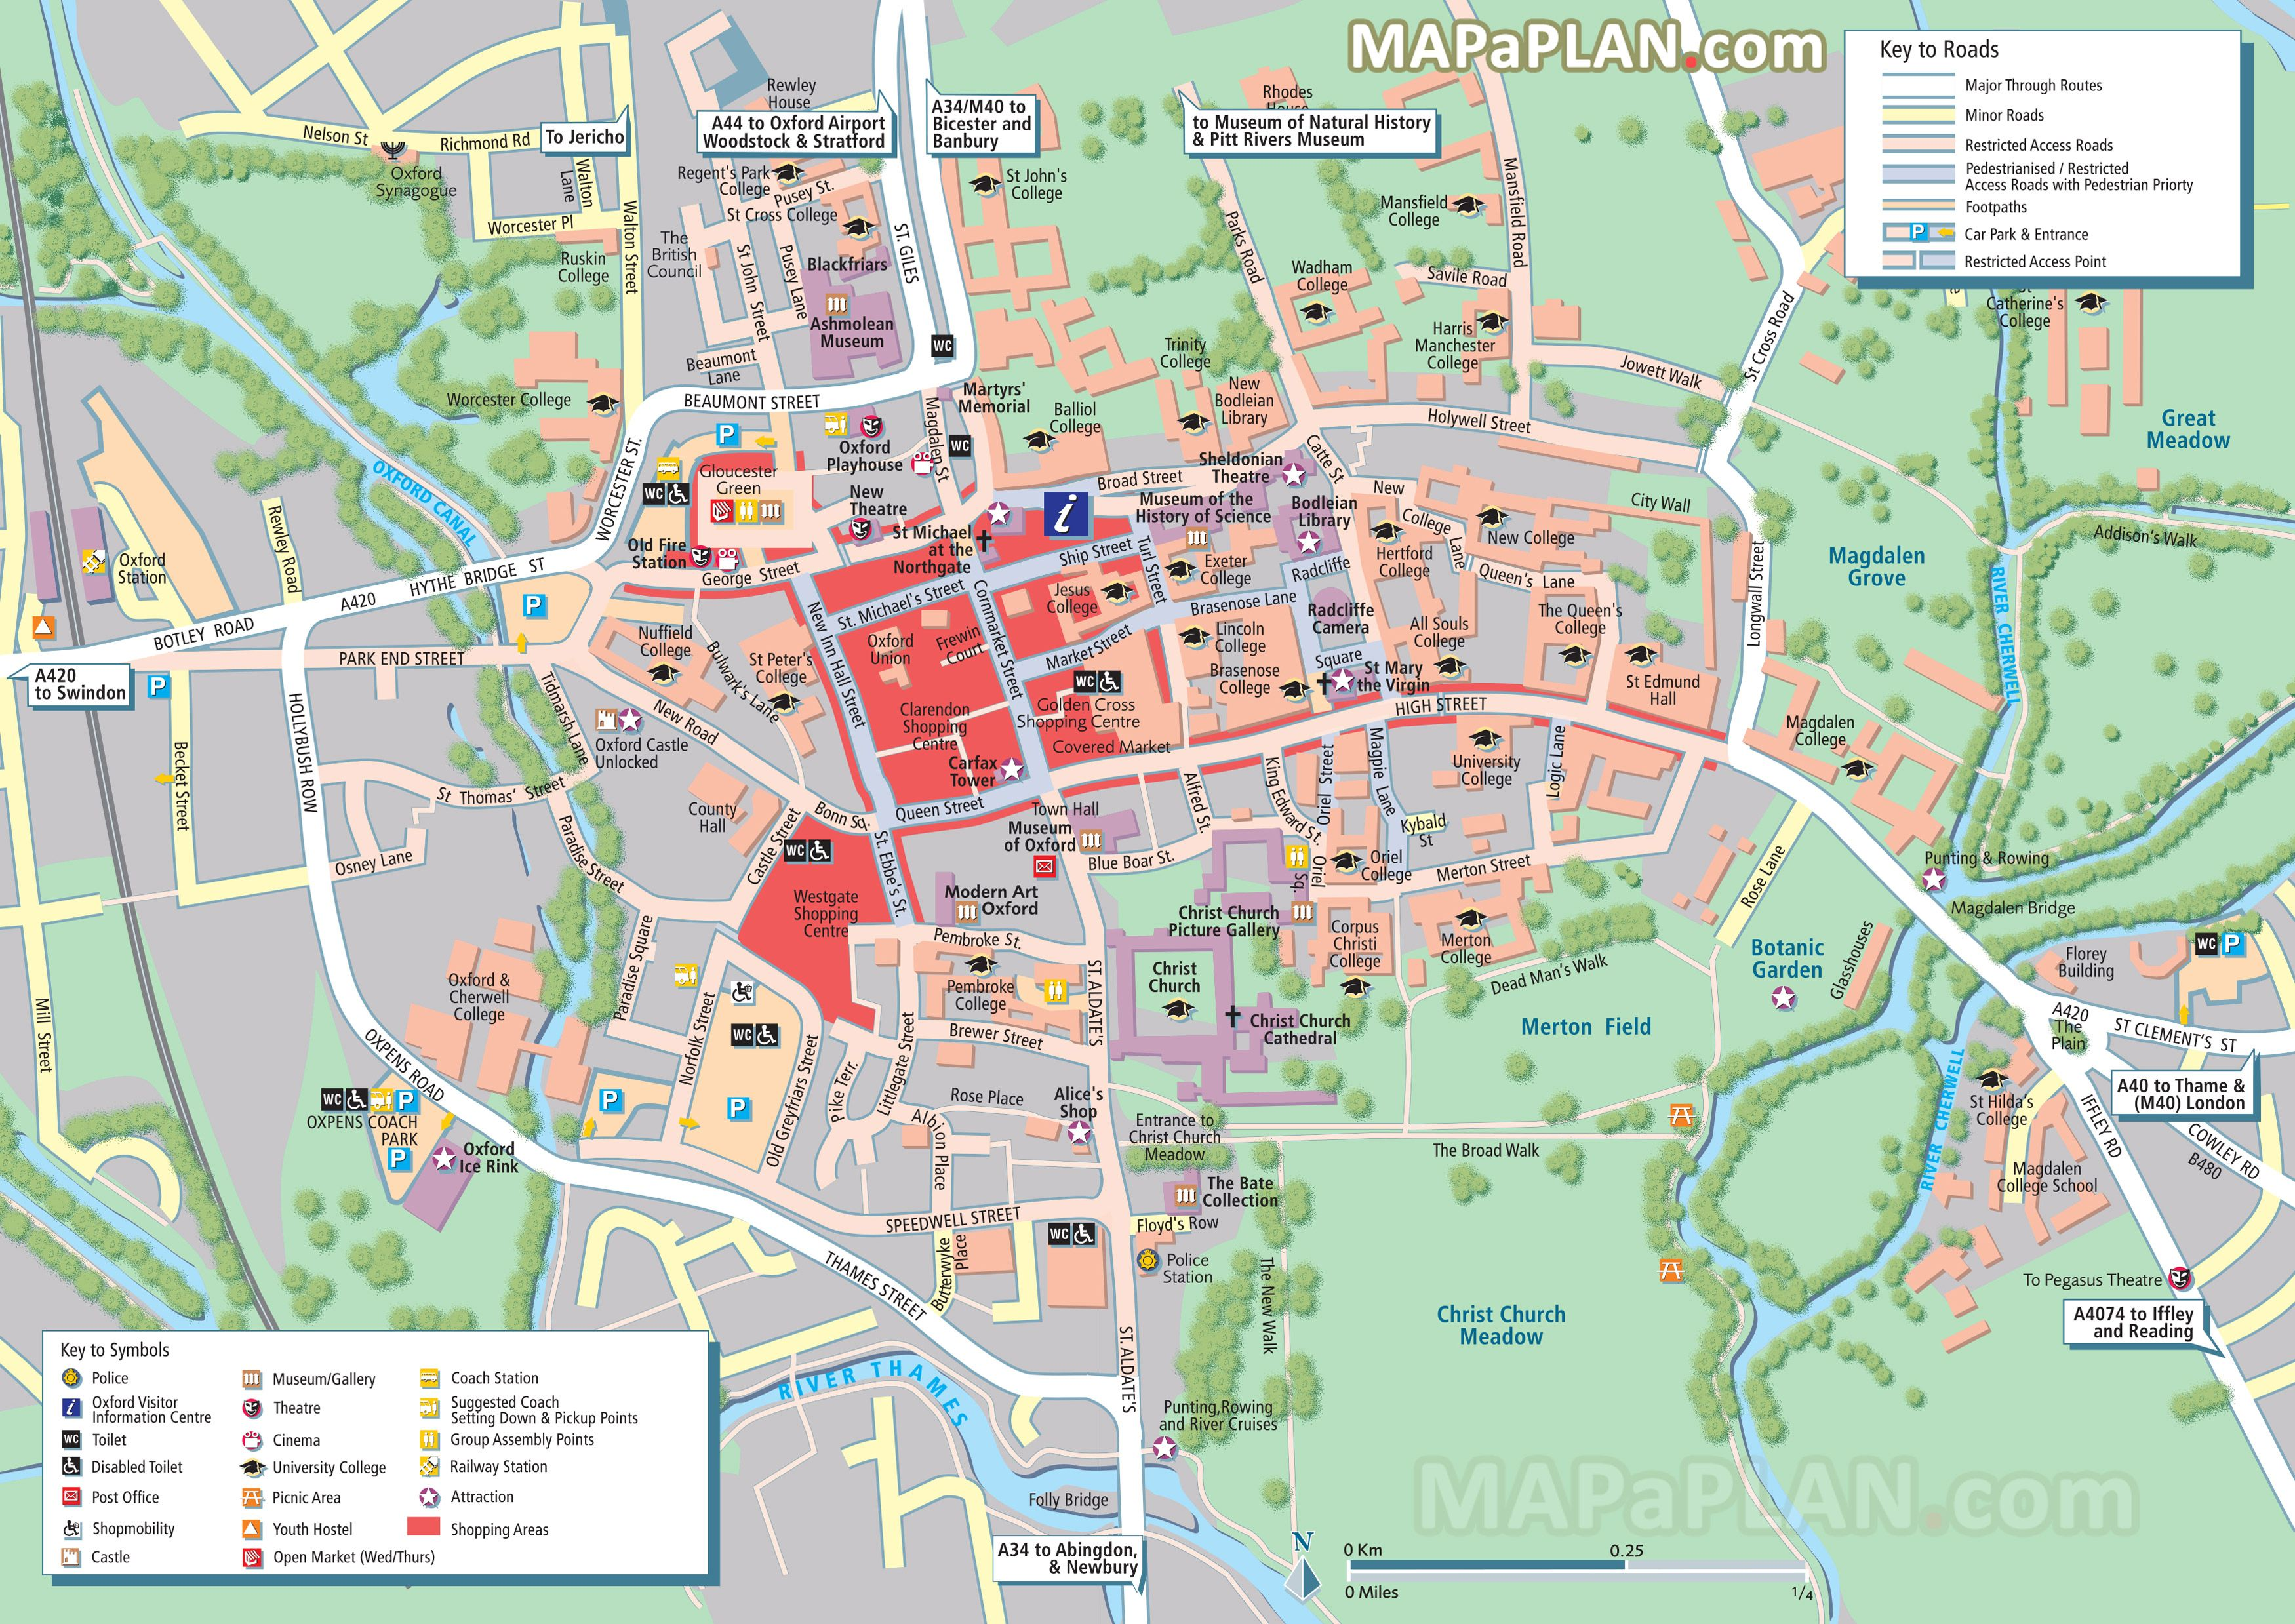 City Centre Detailed Street Travel Plan With Must See Places - London top attractions map